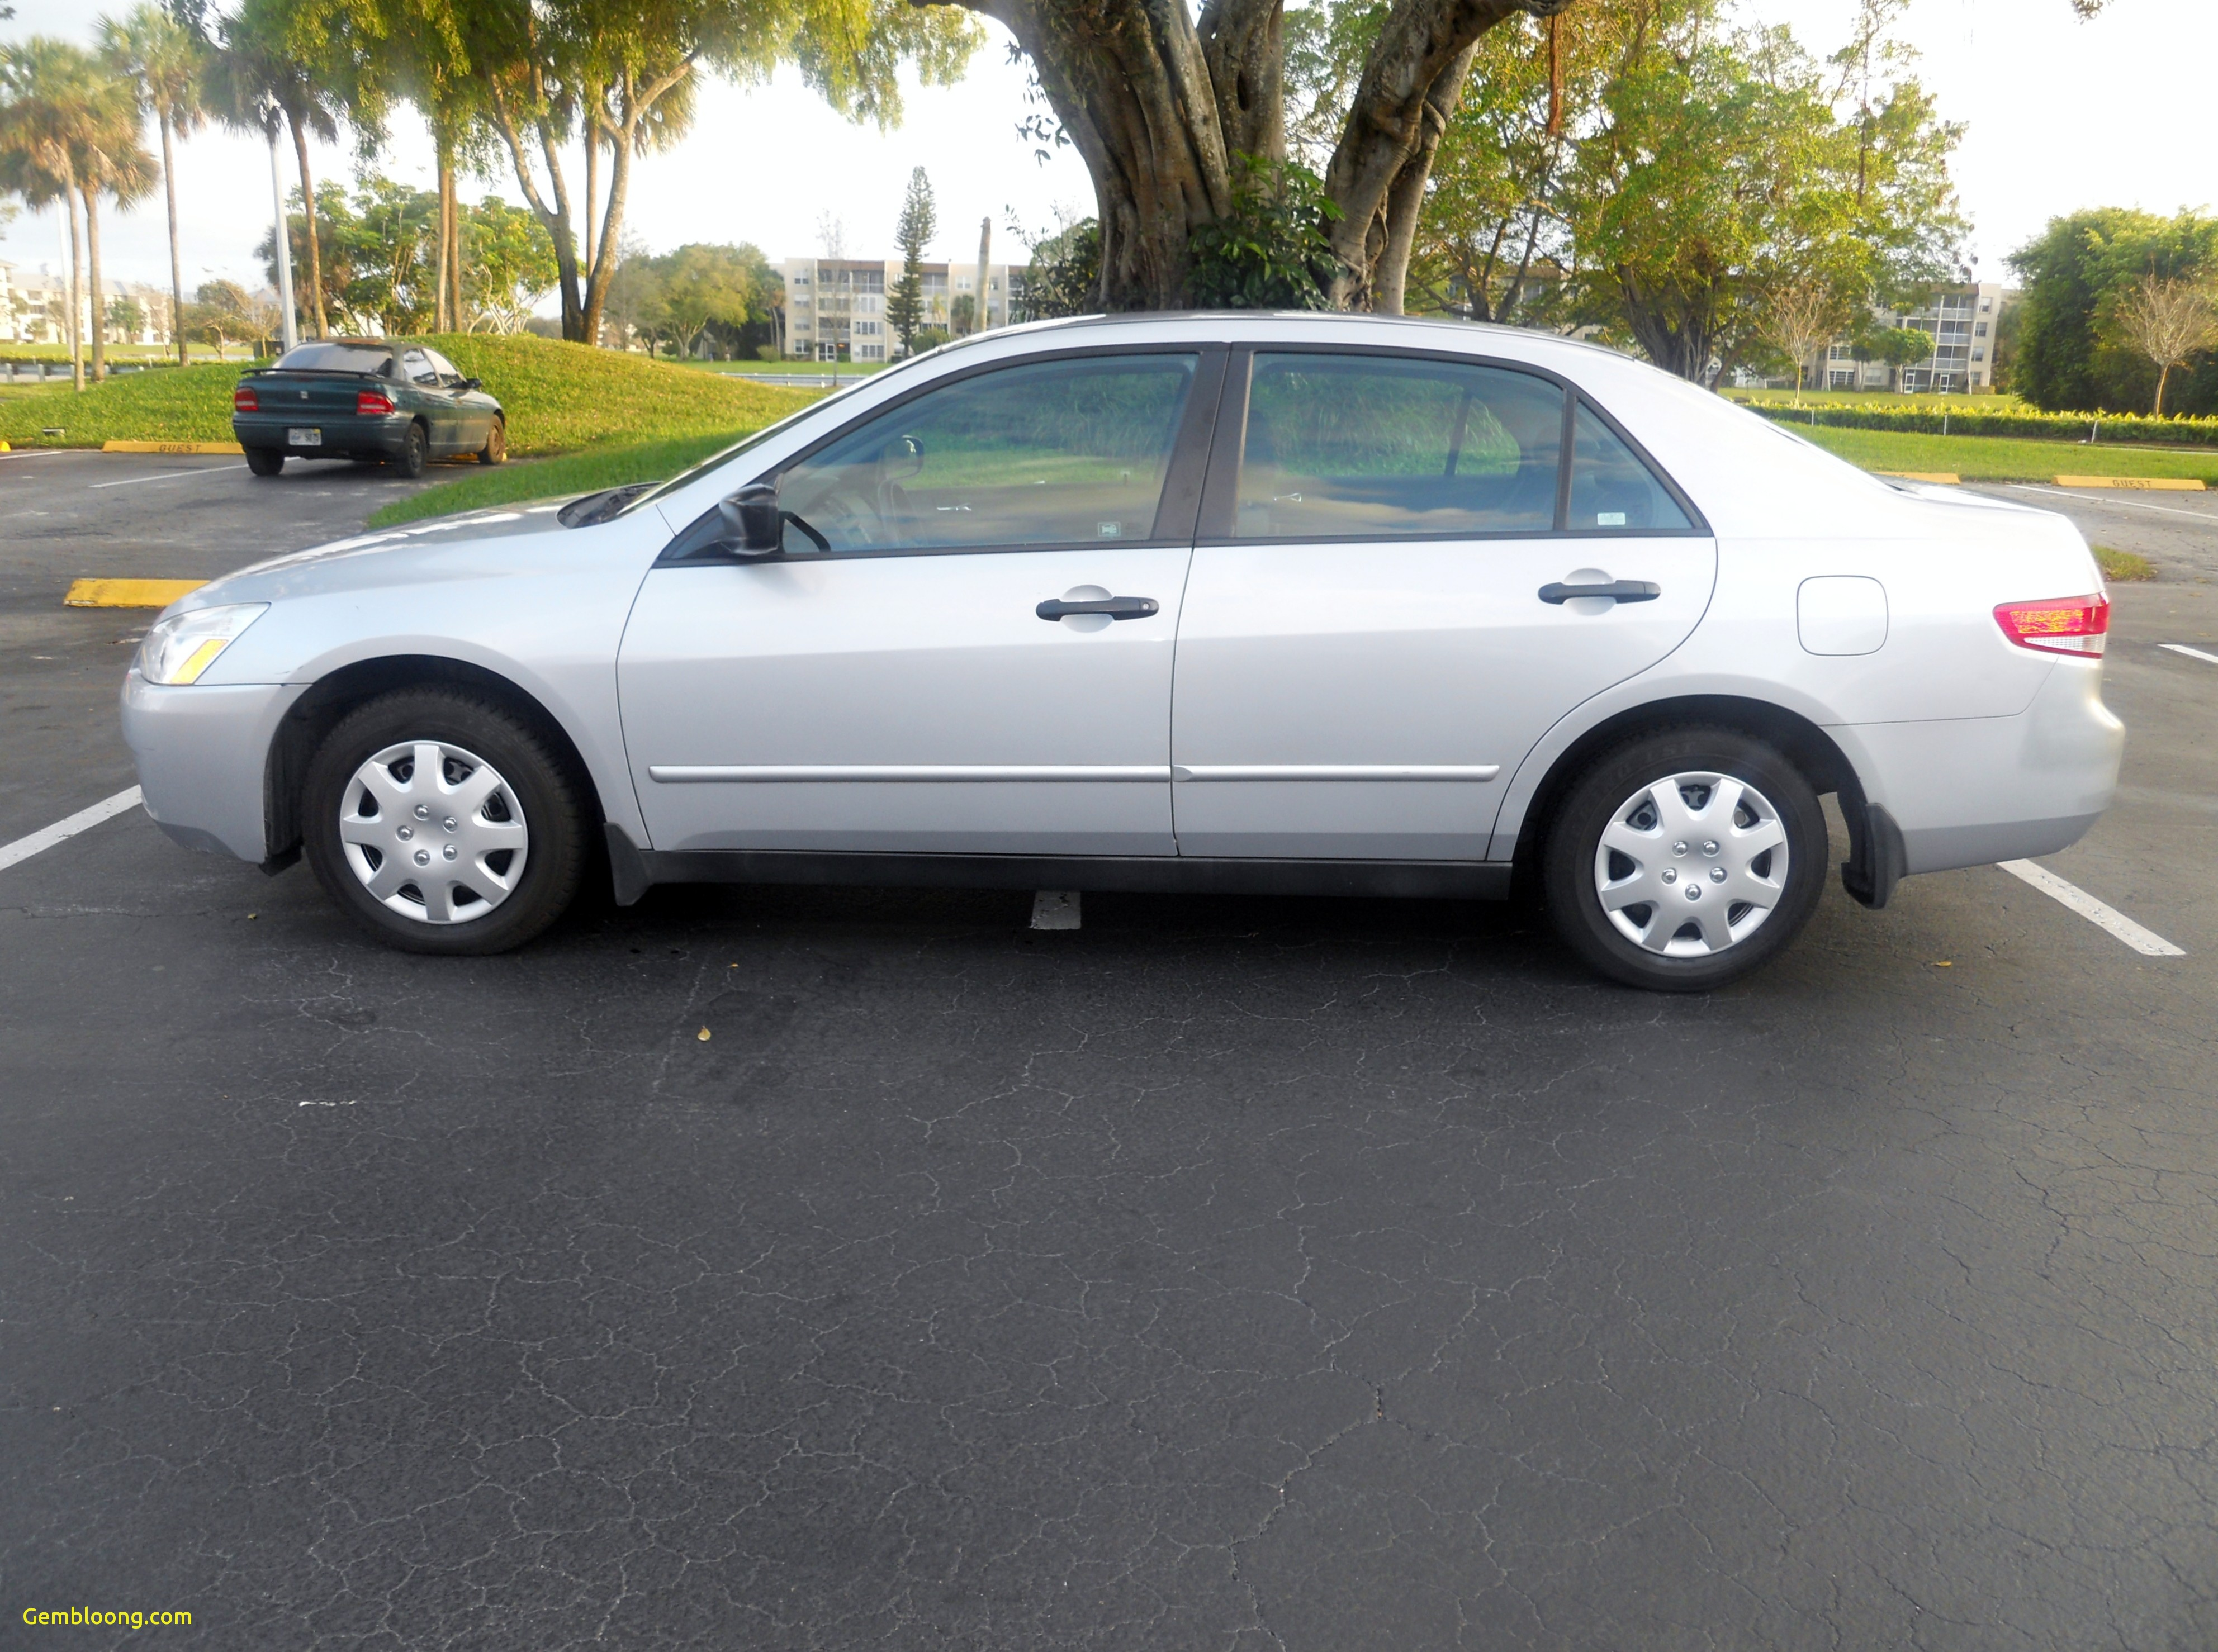 new and used cars near me beautiful cars for sale by owner in ga new craigslist